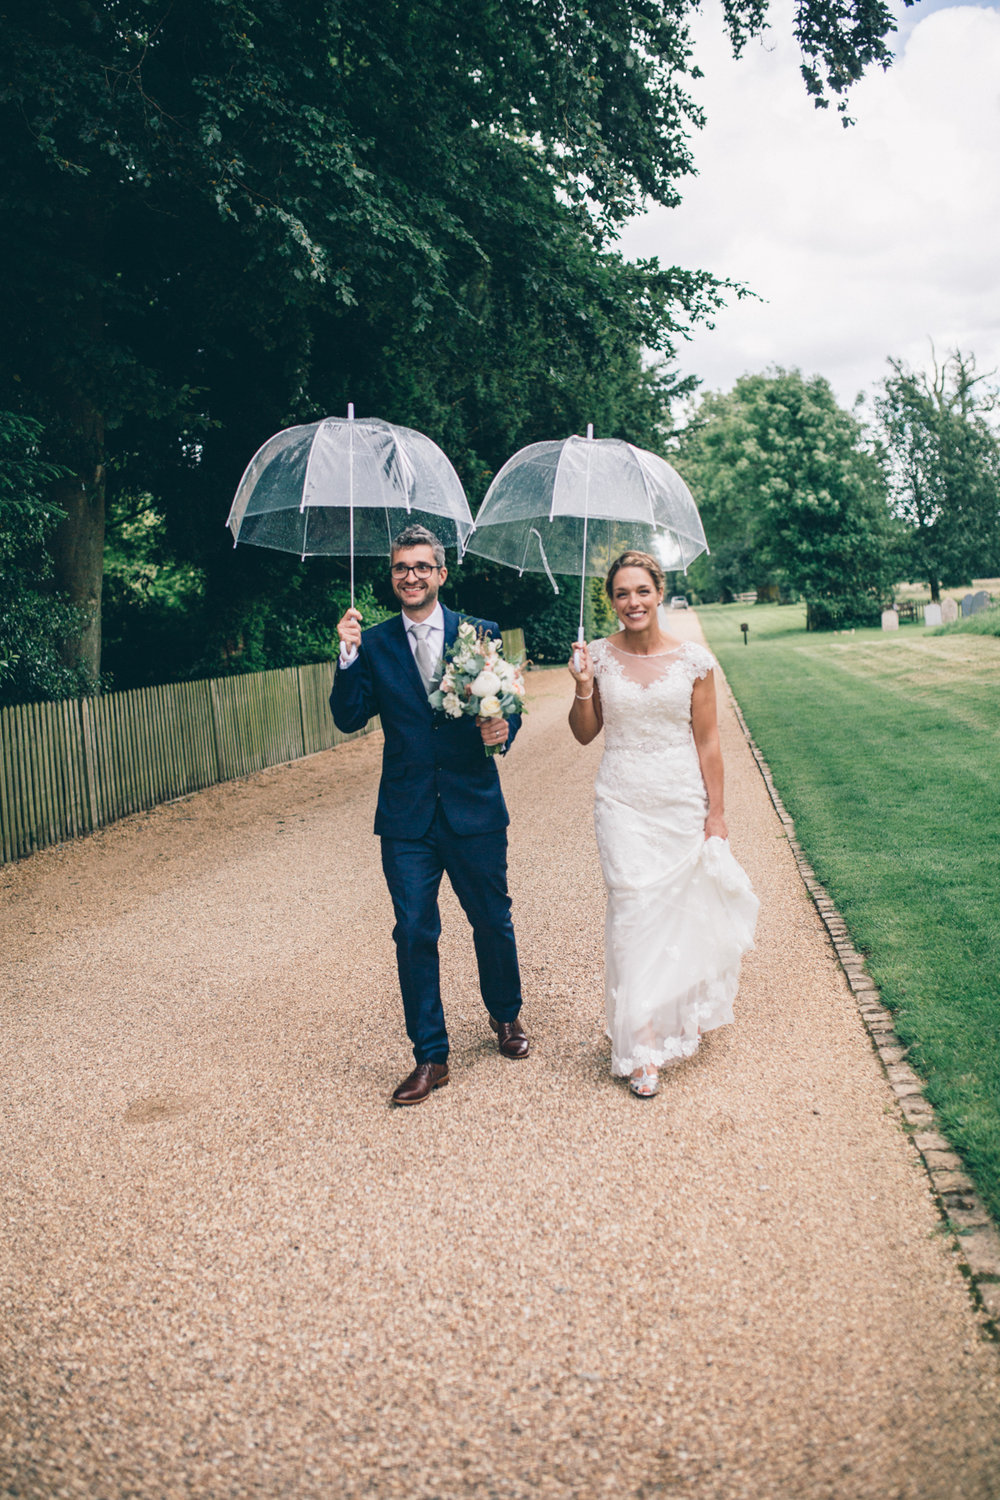 Sarah + Caco Tipi Village Green Wedding Buckinghamshire NaomiJanePhotography-60.jpg